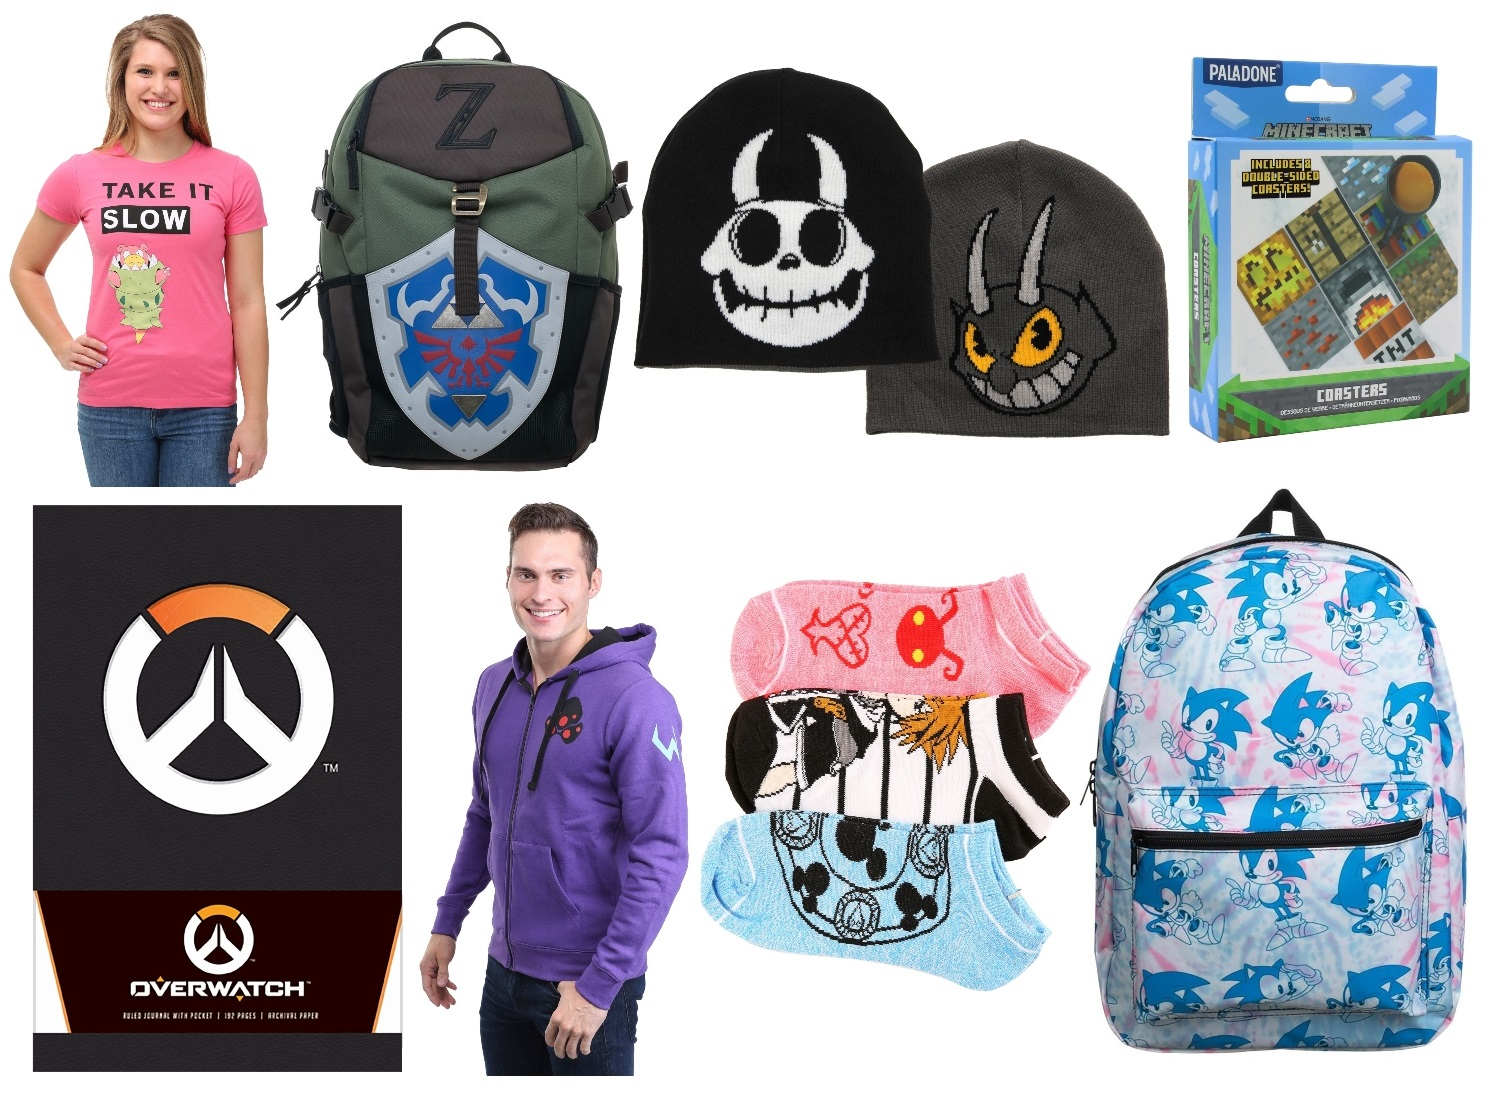 Video Game Gifts for School